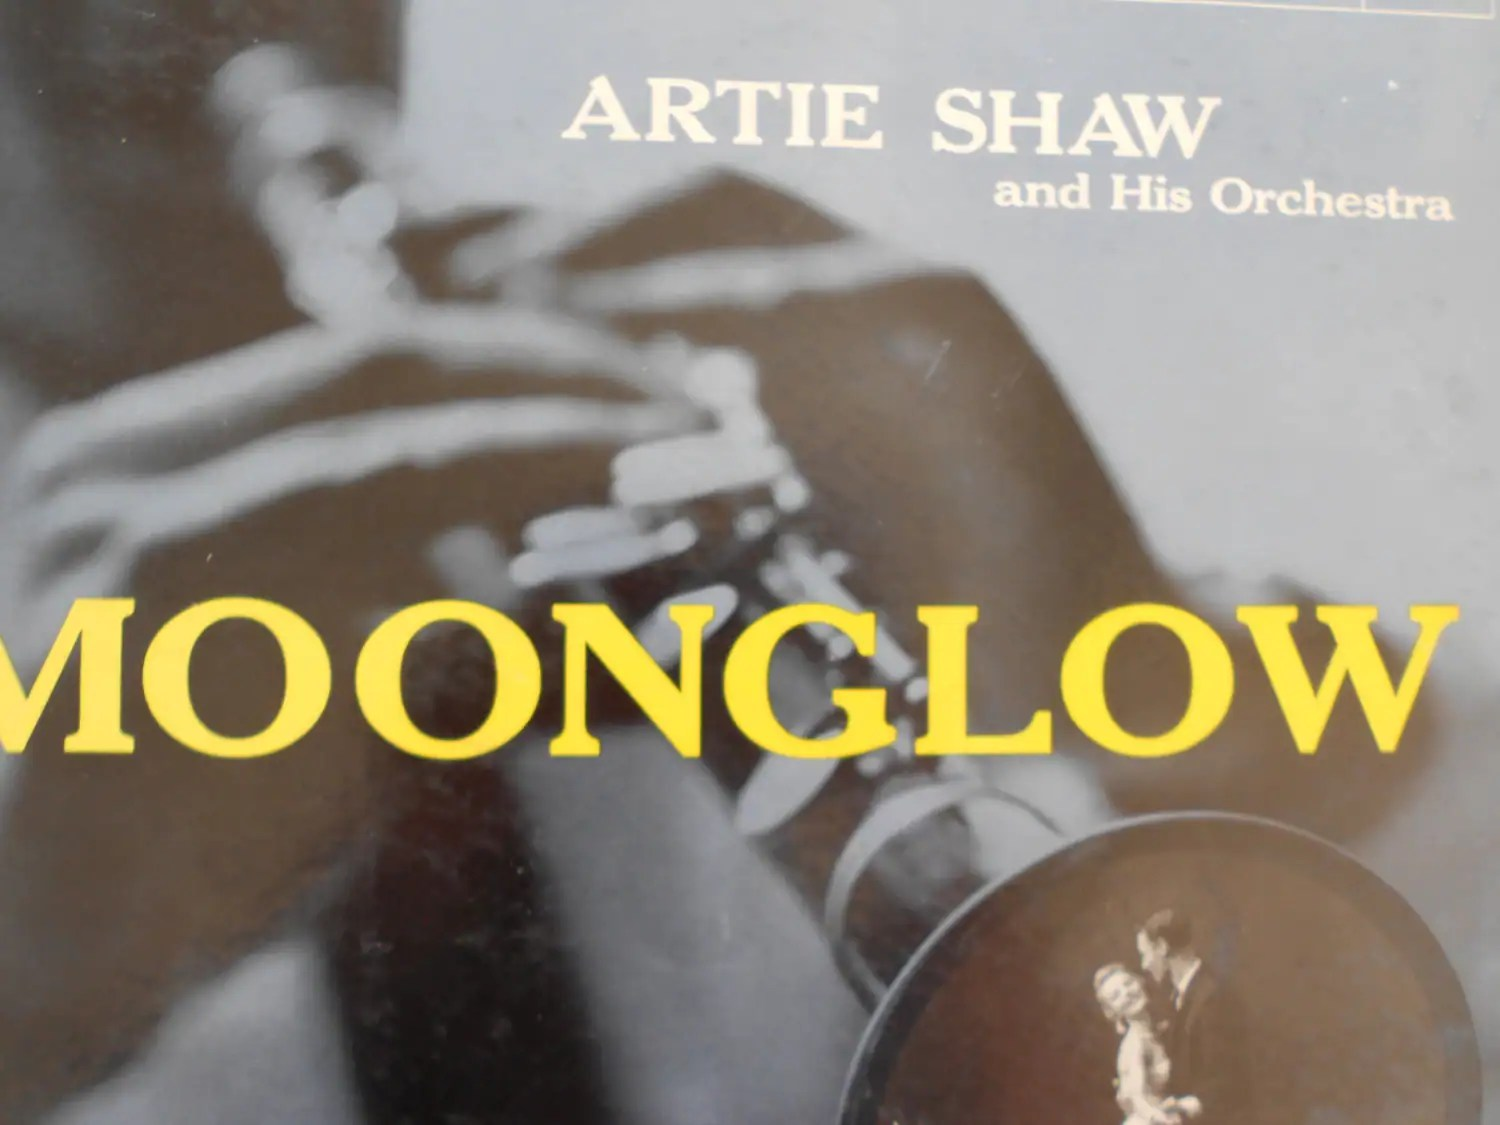 Artie Shaw Genre Artie Shaw And His Orchestra Moonglow Vinyl Record